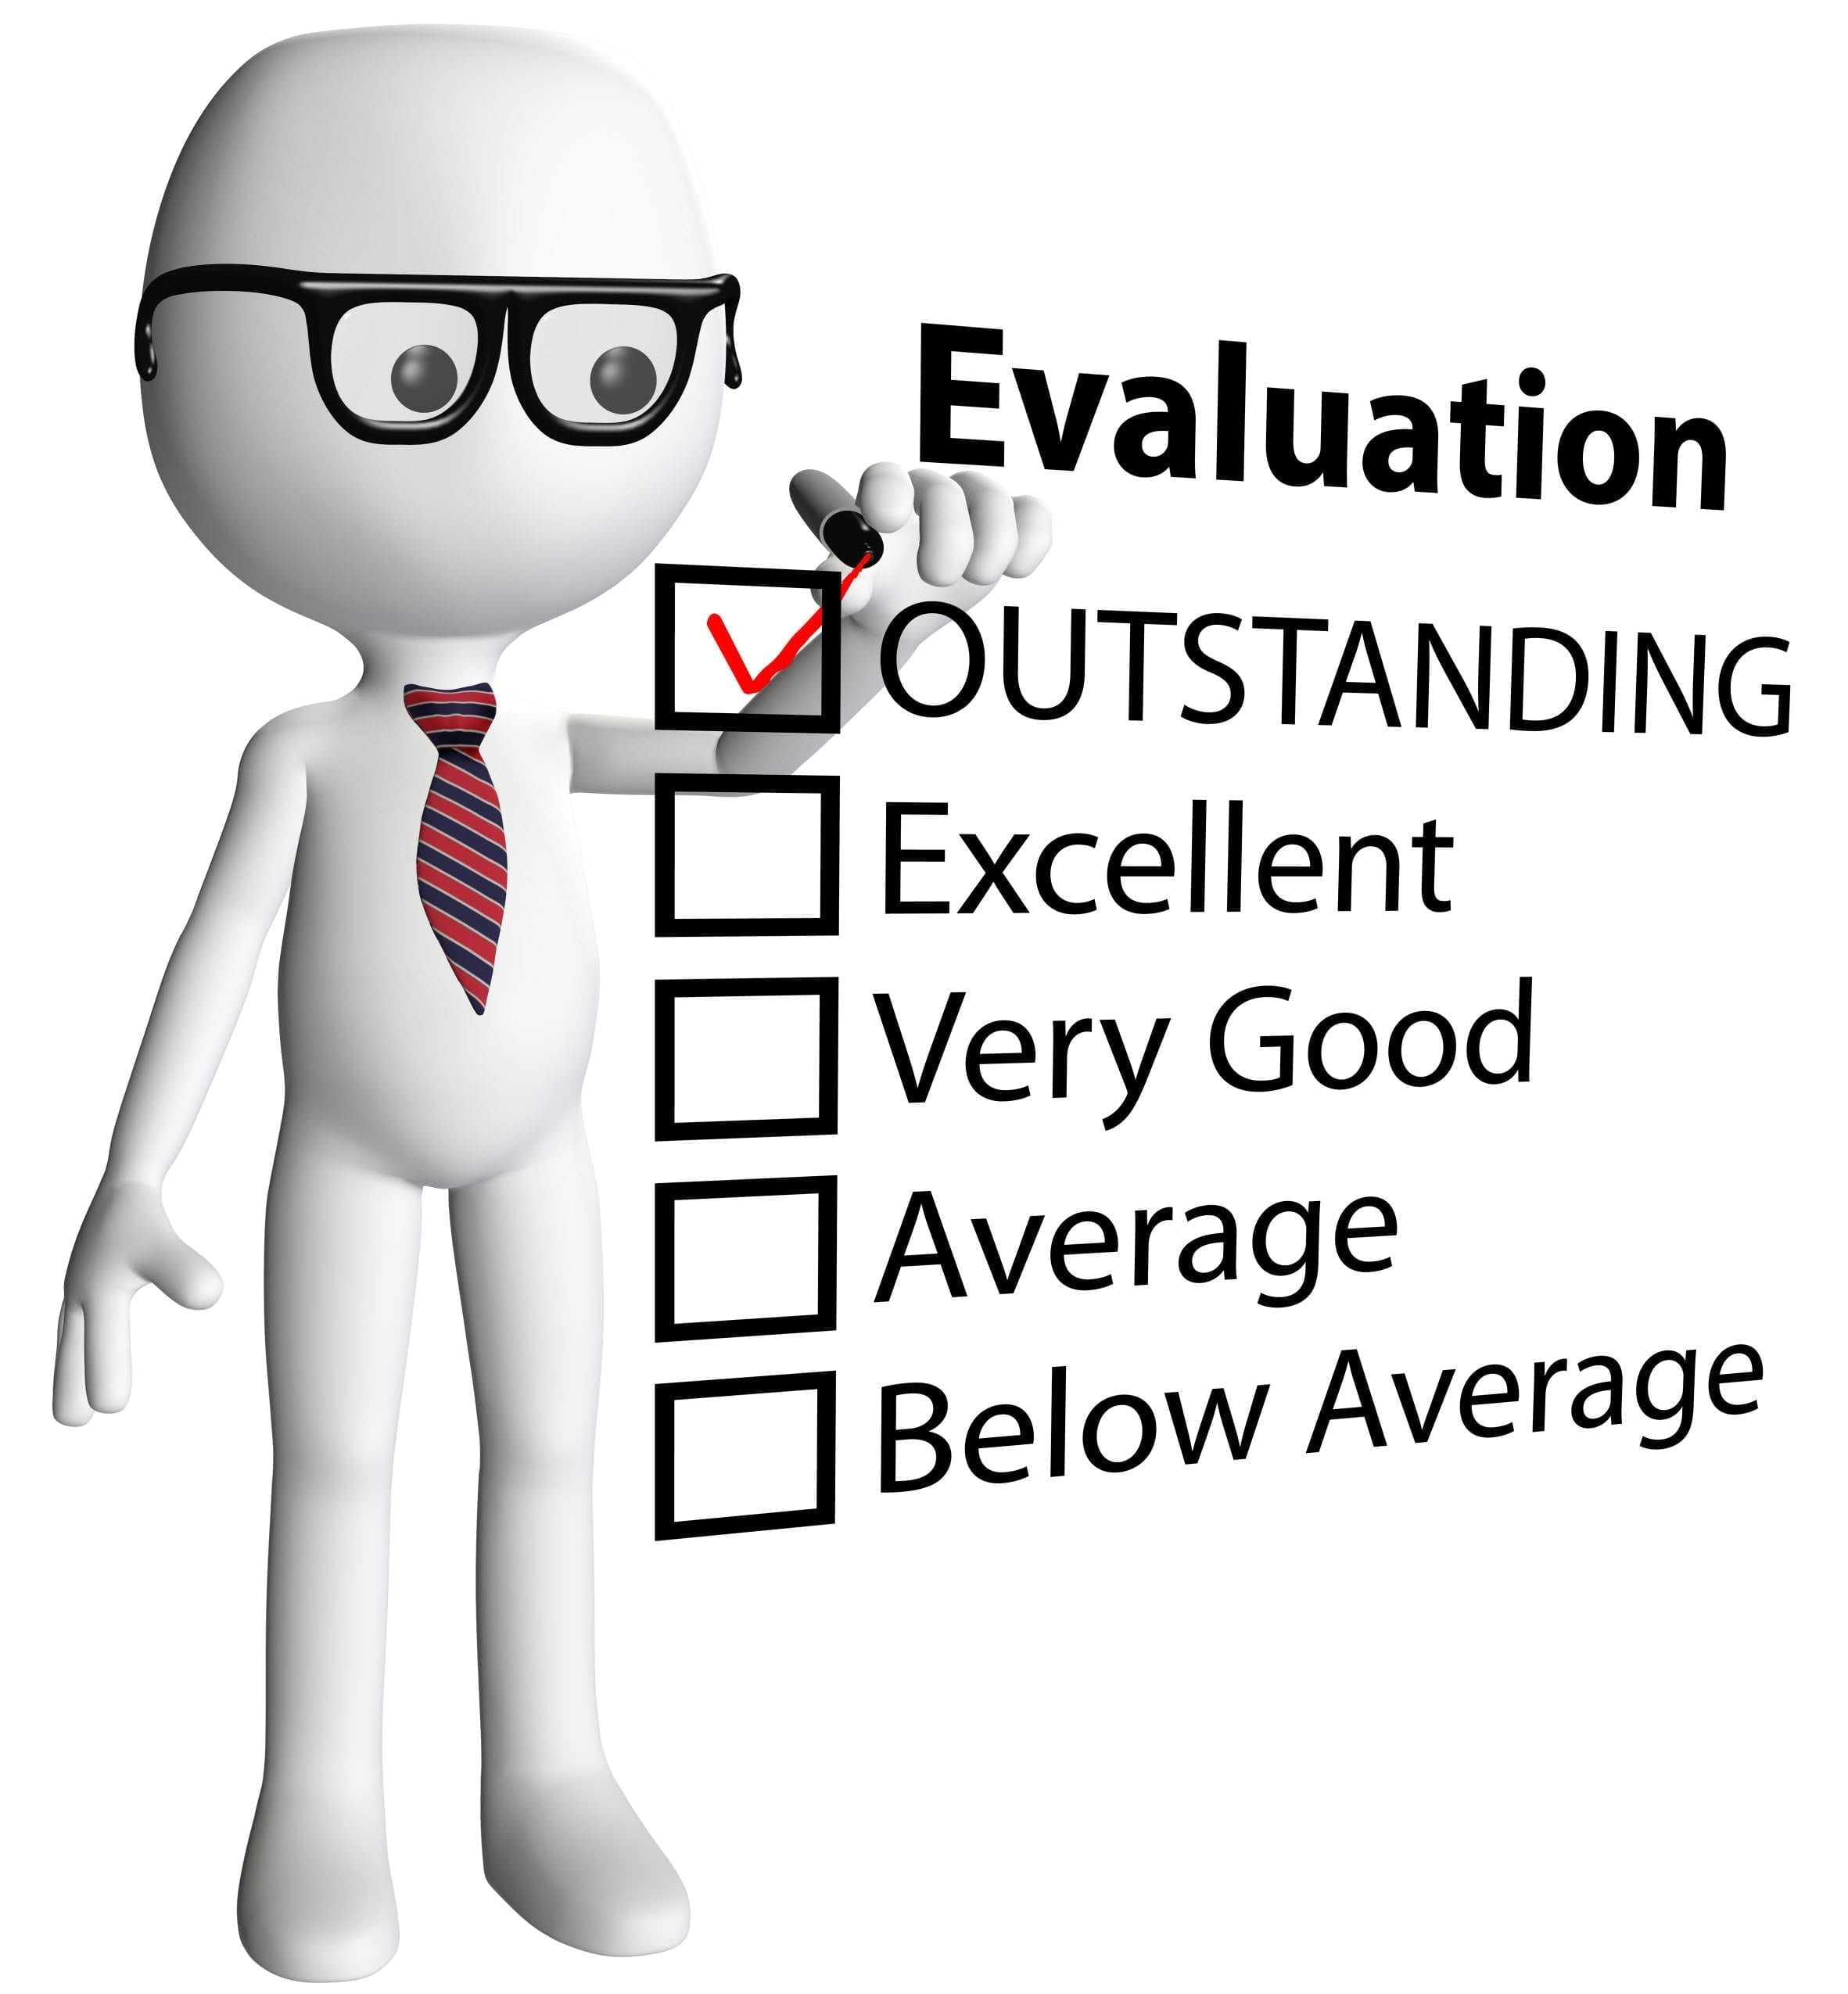 Employee Performance Appraisal And Evaluation Phrases